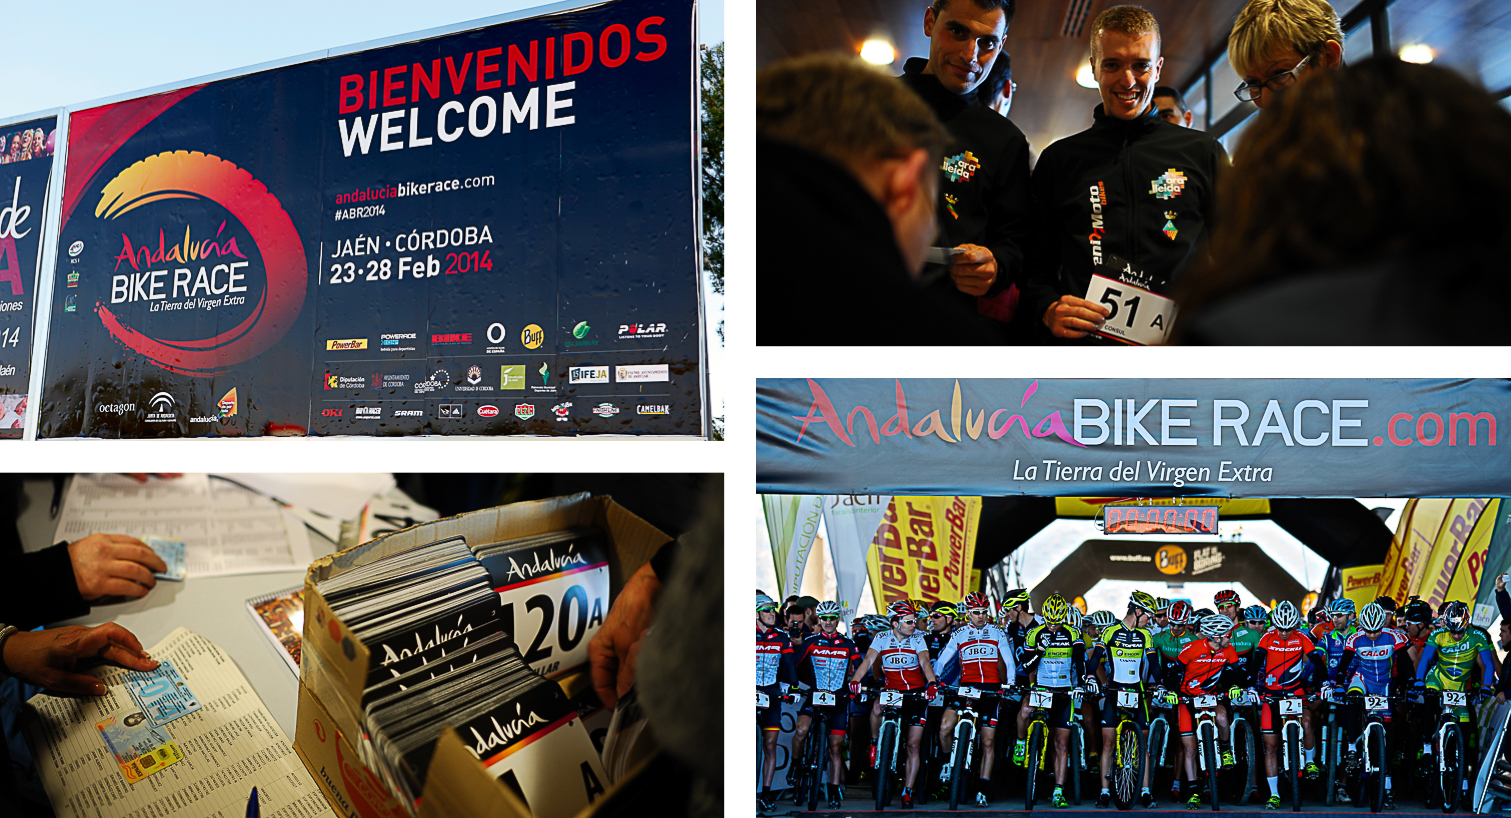 Andaloucia_Bike_Race_2014_Compo4